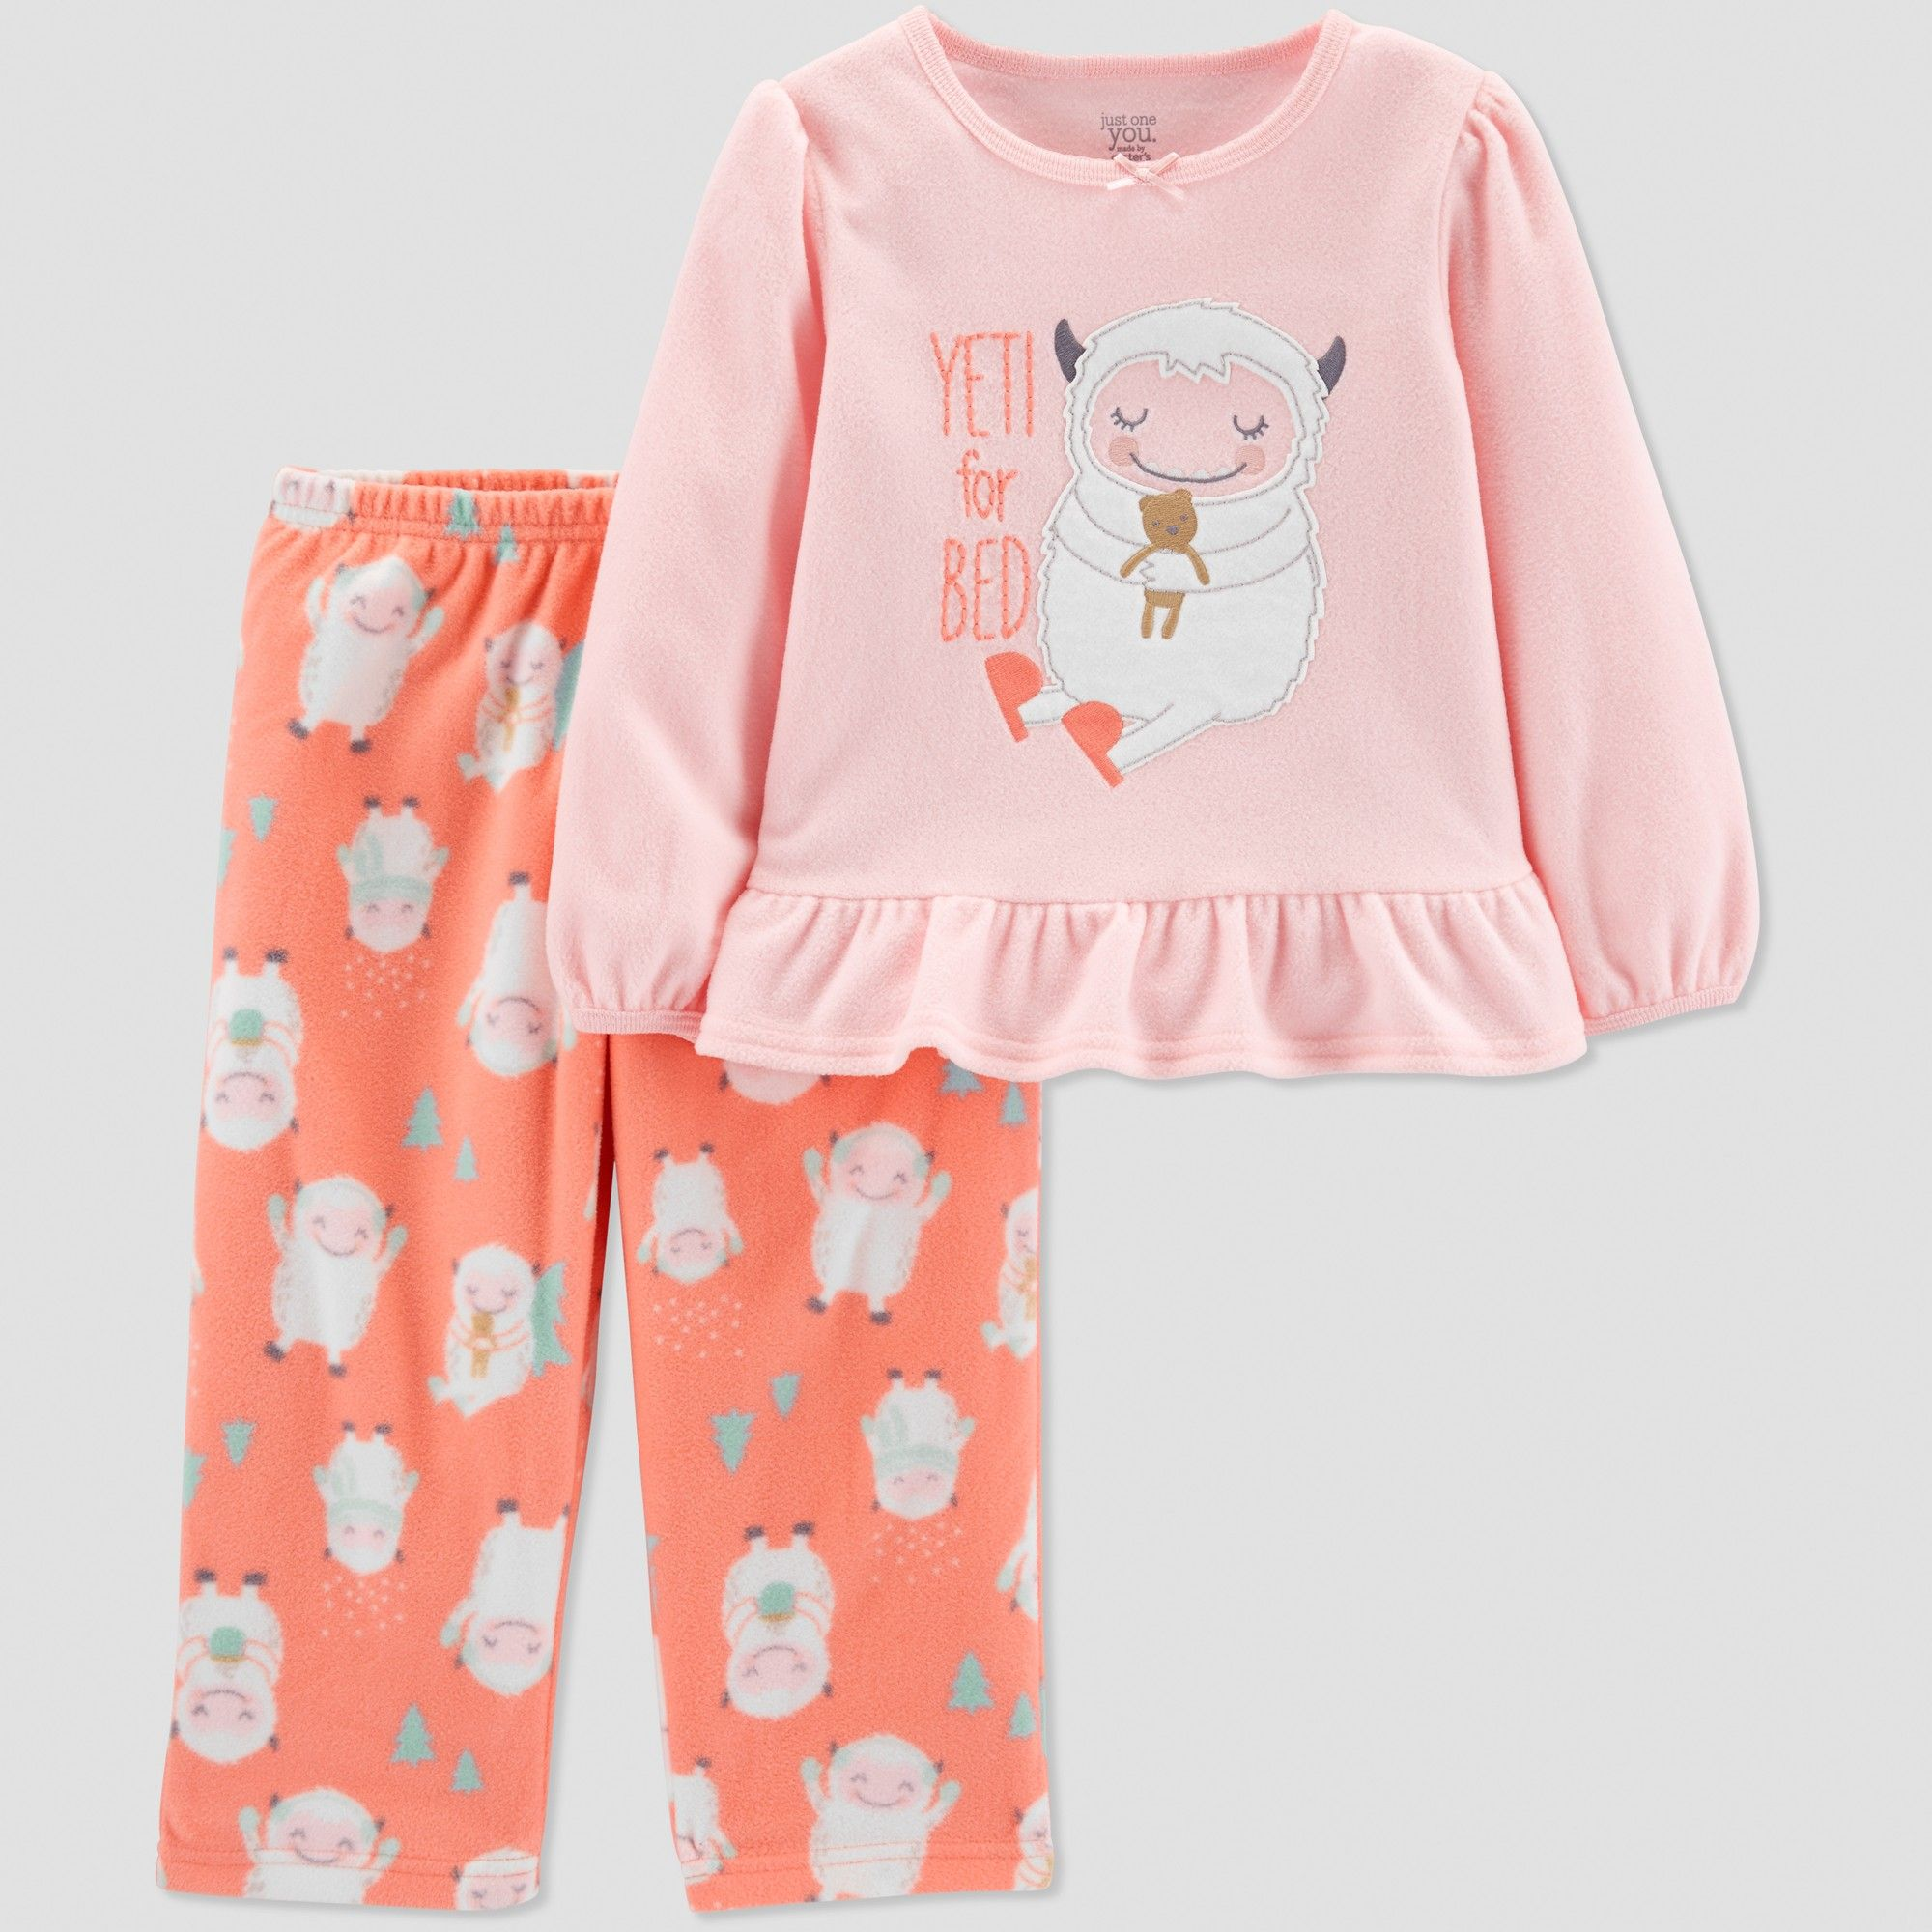 6b6d32fa2 Toddler Girls' Yeti 2pc Pajama Set - Just One You made by carter's Coral  4T, Pink